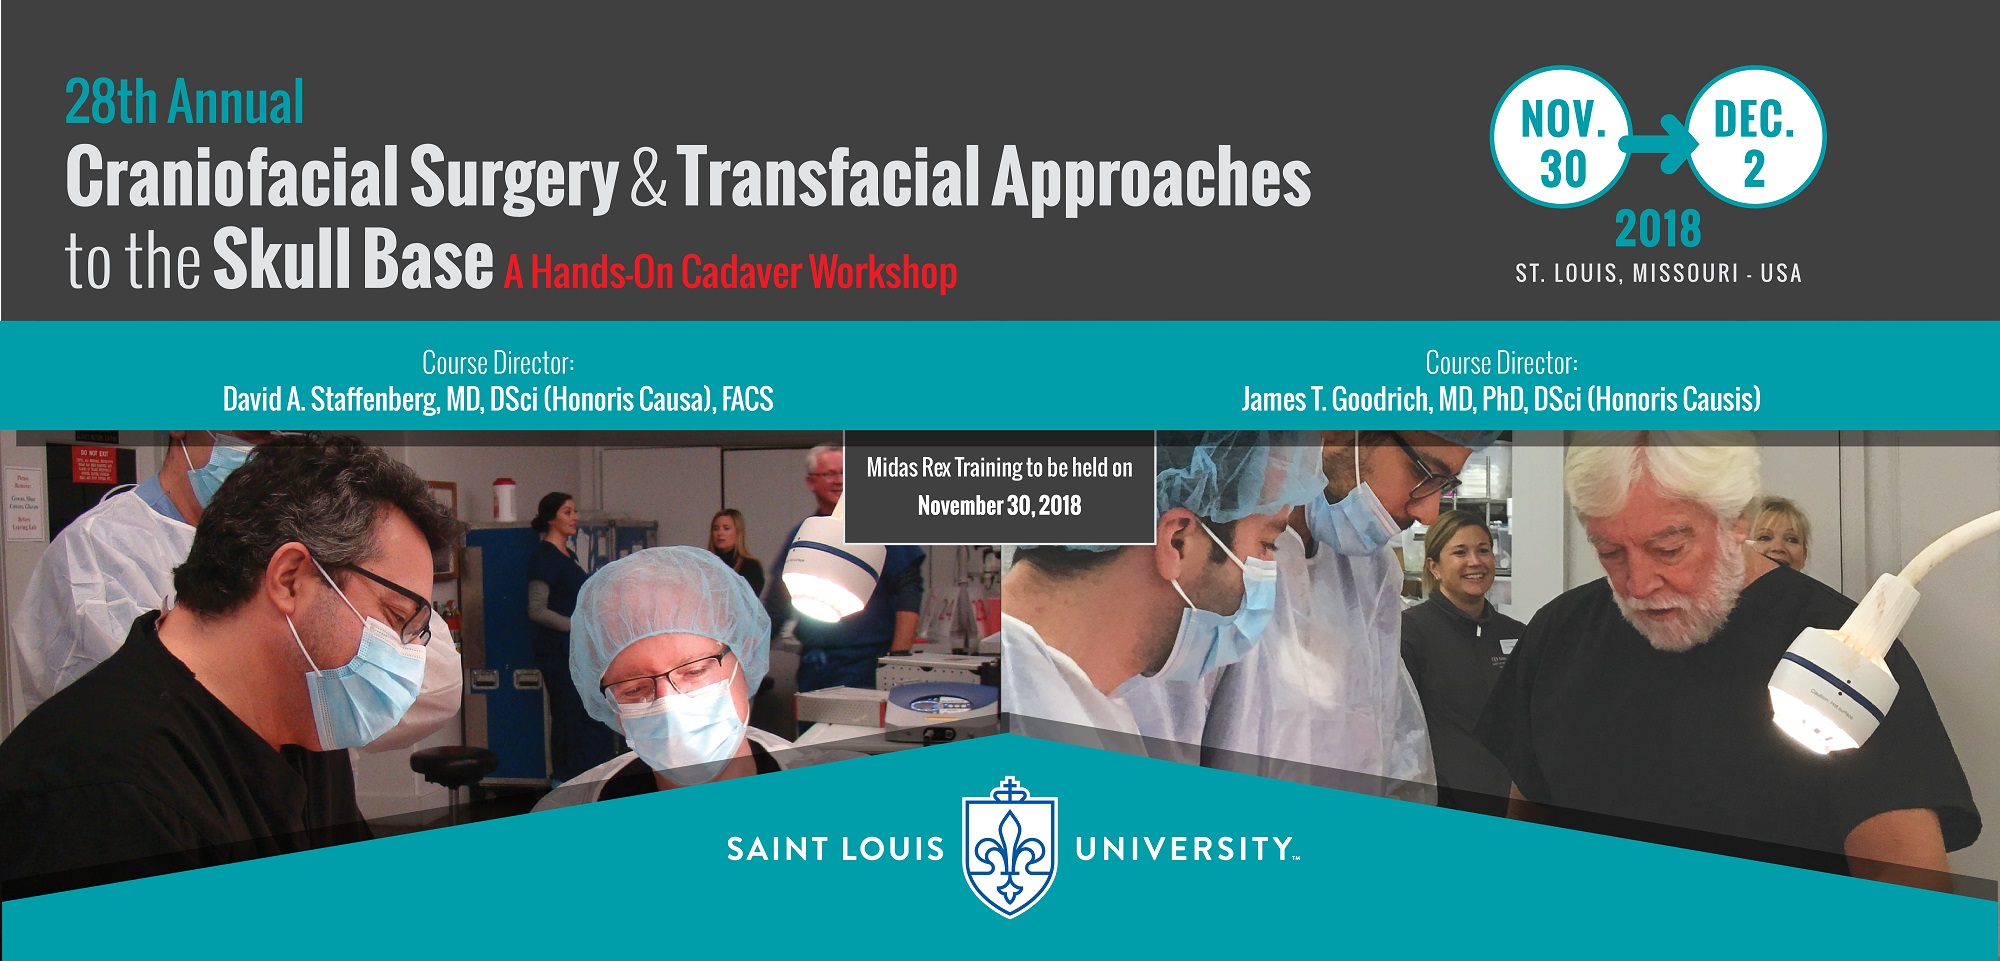 28th Annual Craniofacial Surgery and Transfacial Approaches to the Skull Base